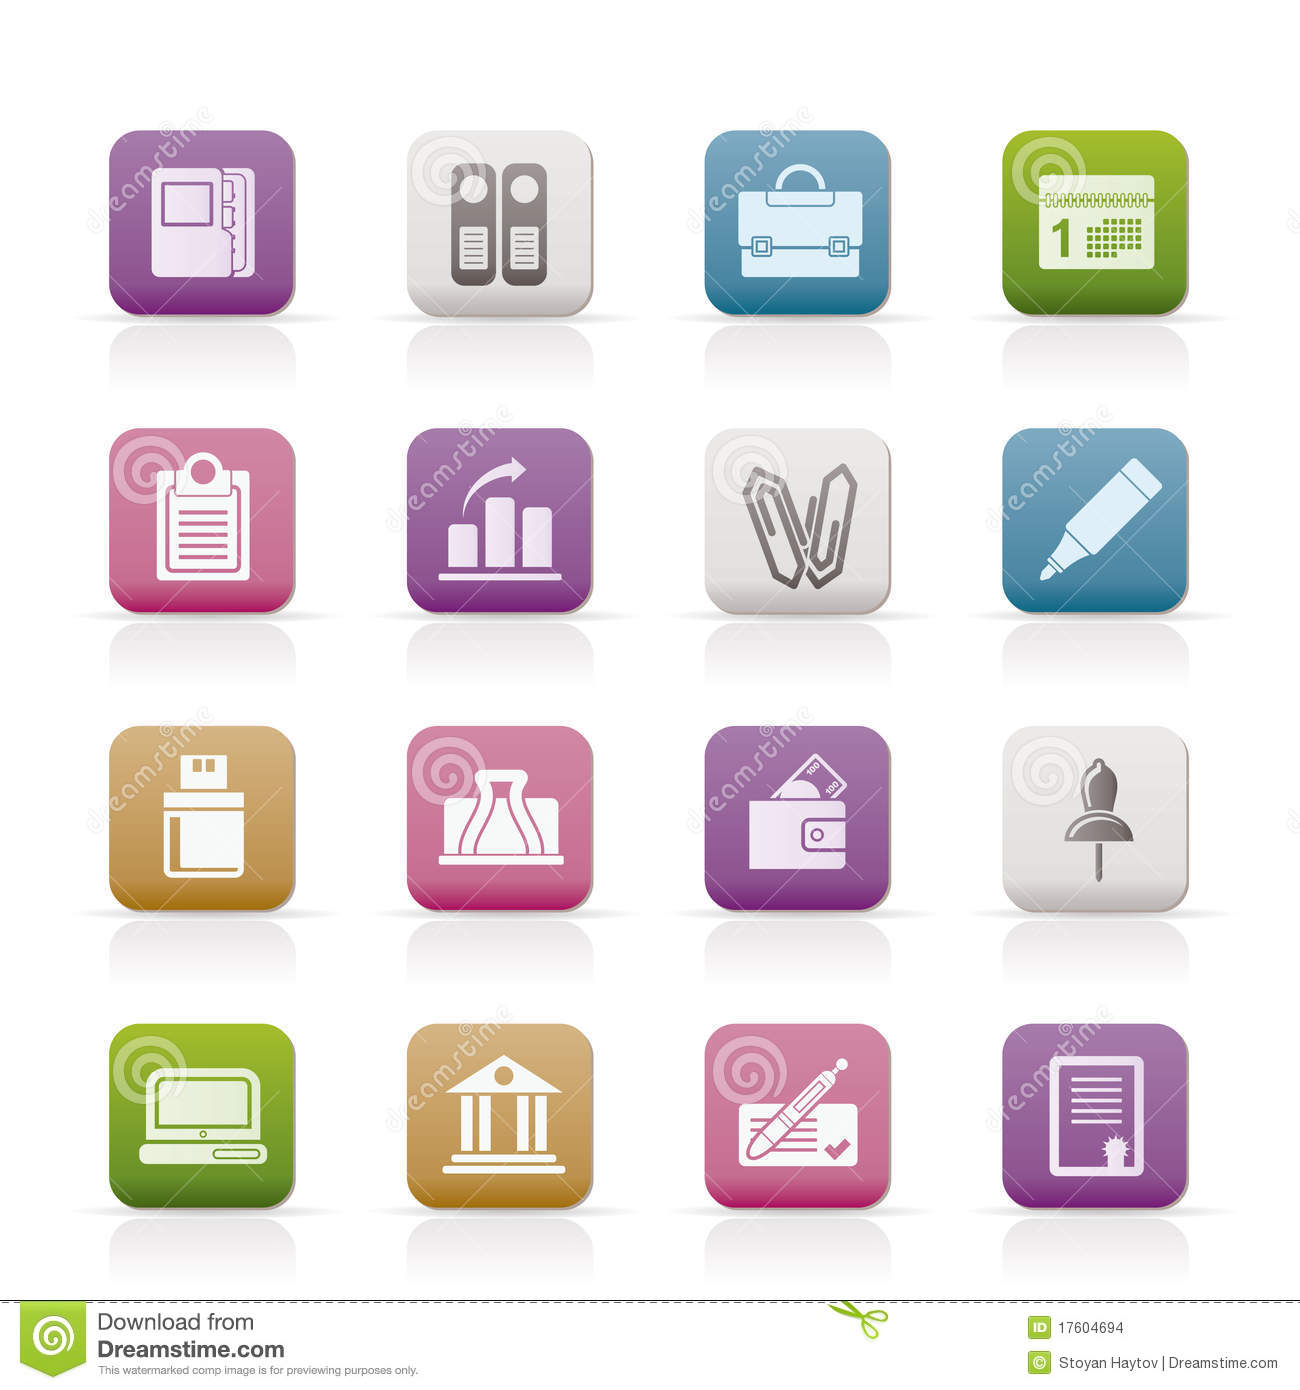 8 Business Office Icon Images